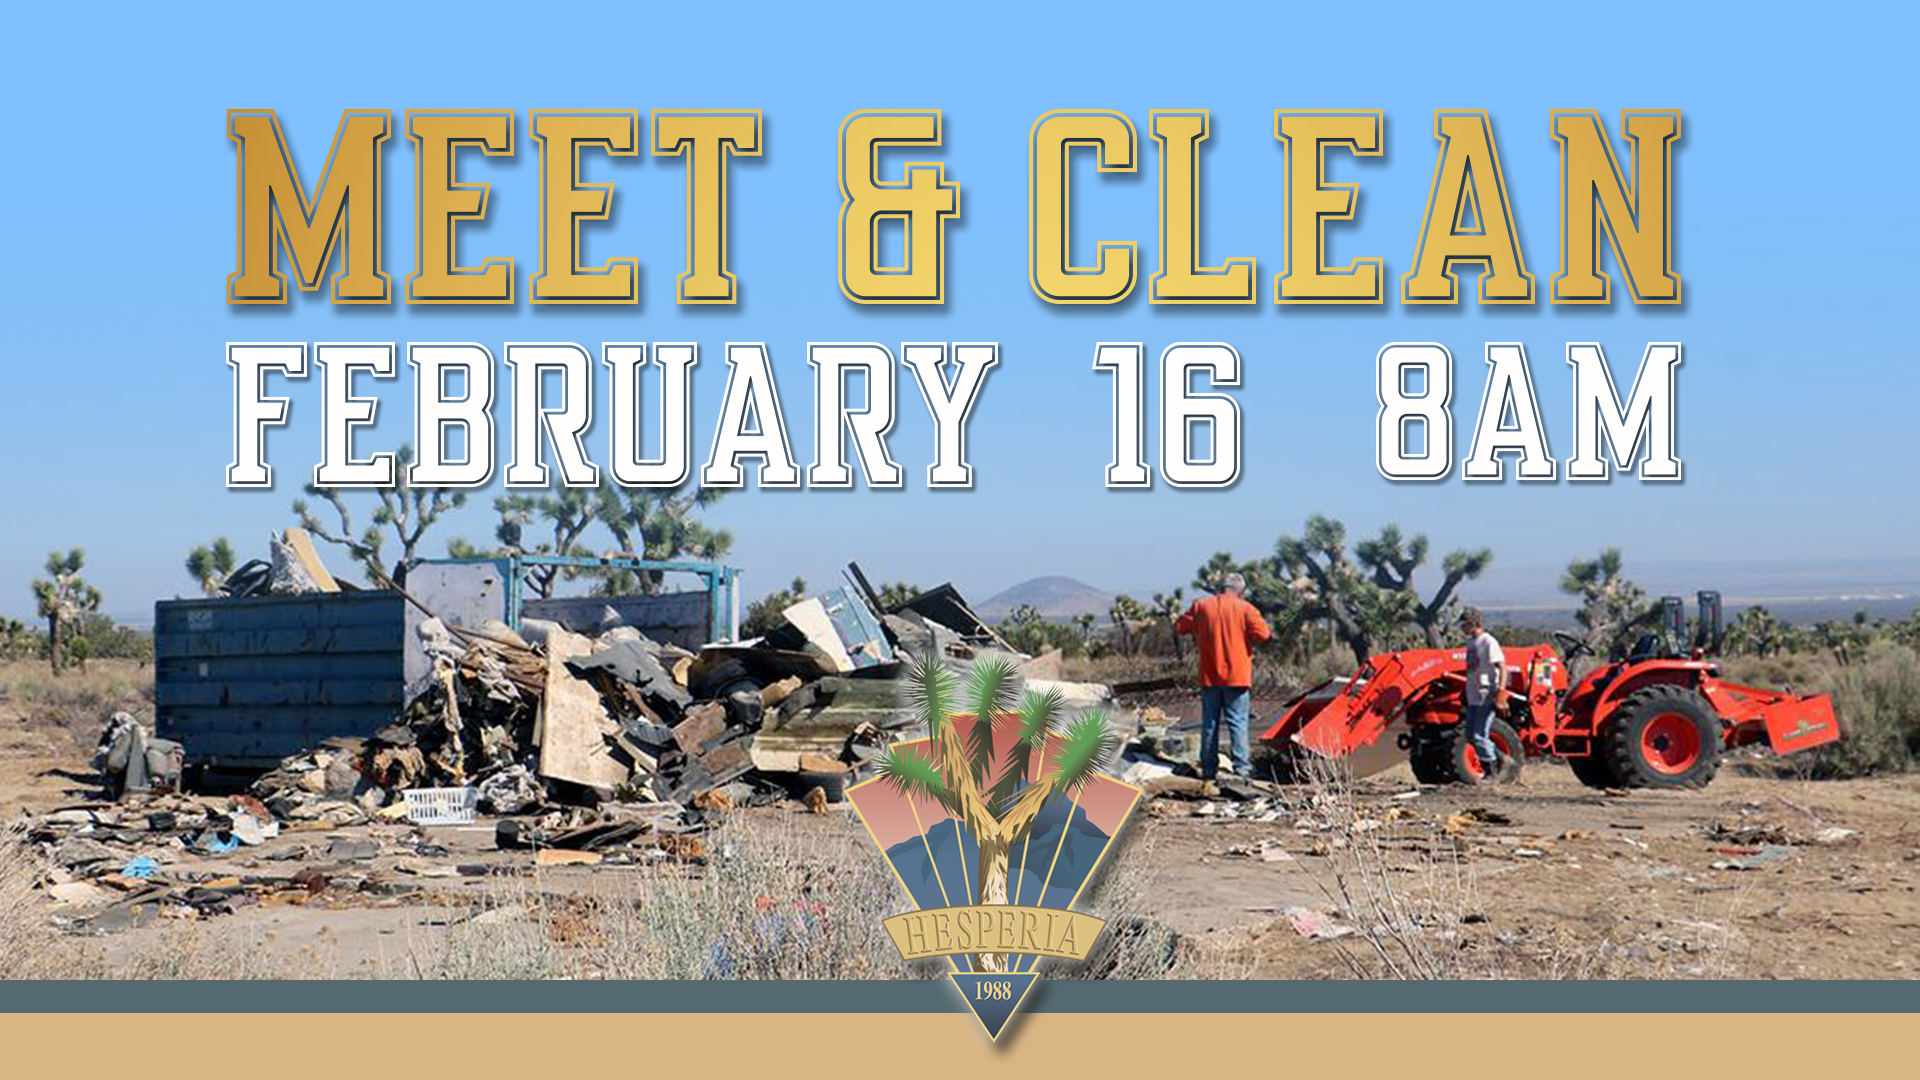 Meet and Clean February 2019 Flyer